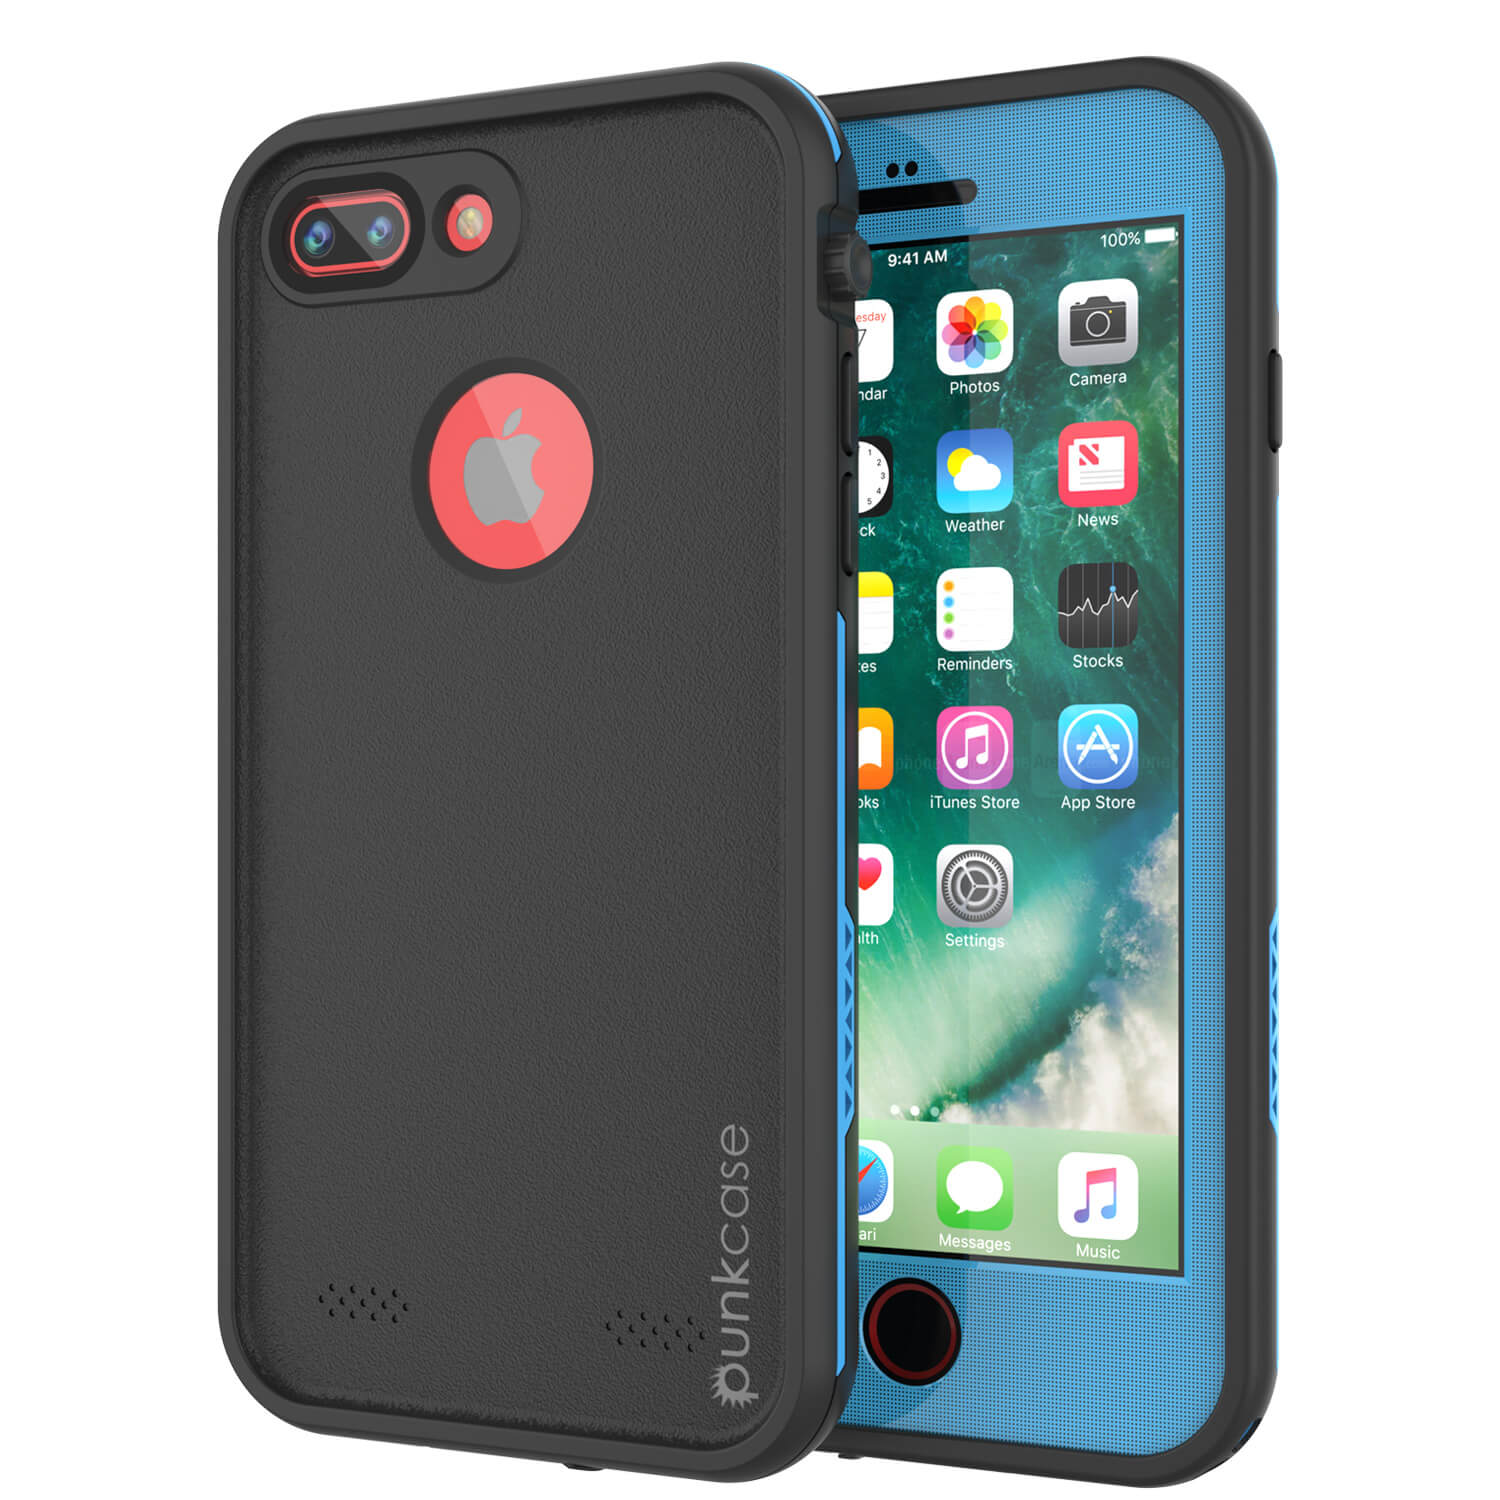 iPhone 7+ Plus Waterproof Case, Punkcase SpikeStar Light-Blue Series | Thin Fit 6.6ft Underwater IP68